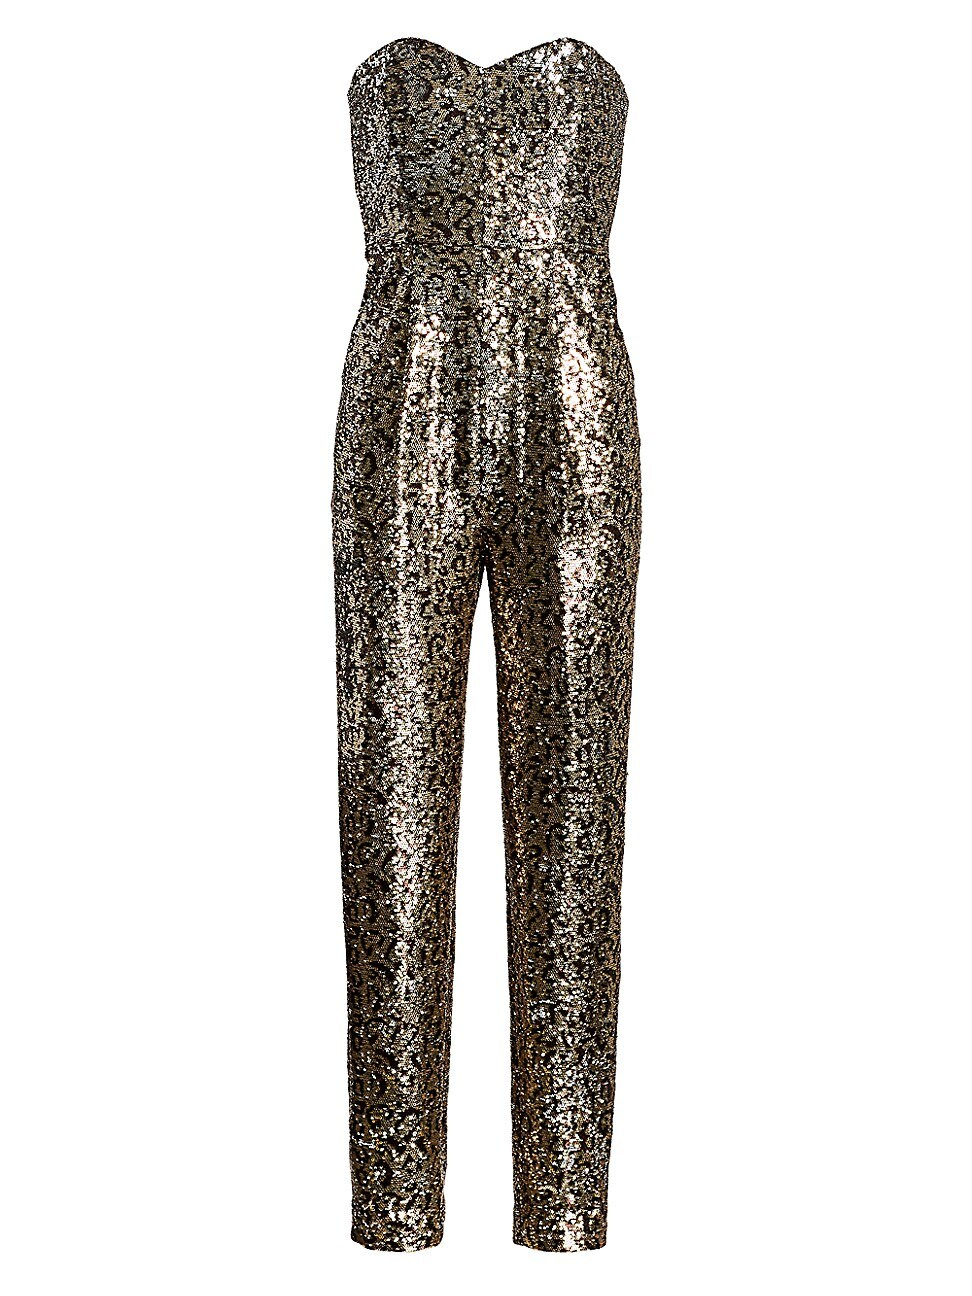 MILLY WOMEN'S SEQUIN LEOPARD STRAPLESS JUMPSUIT